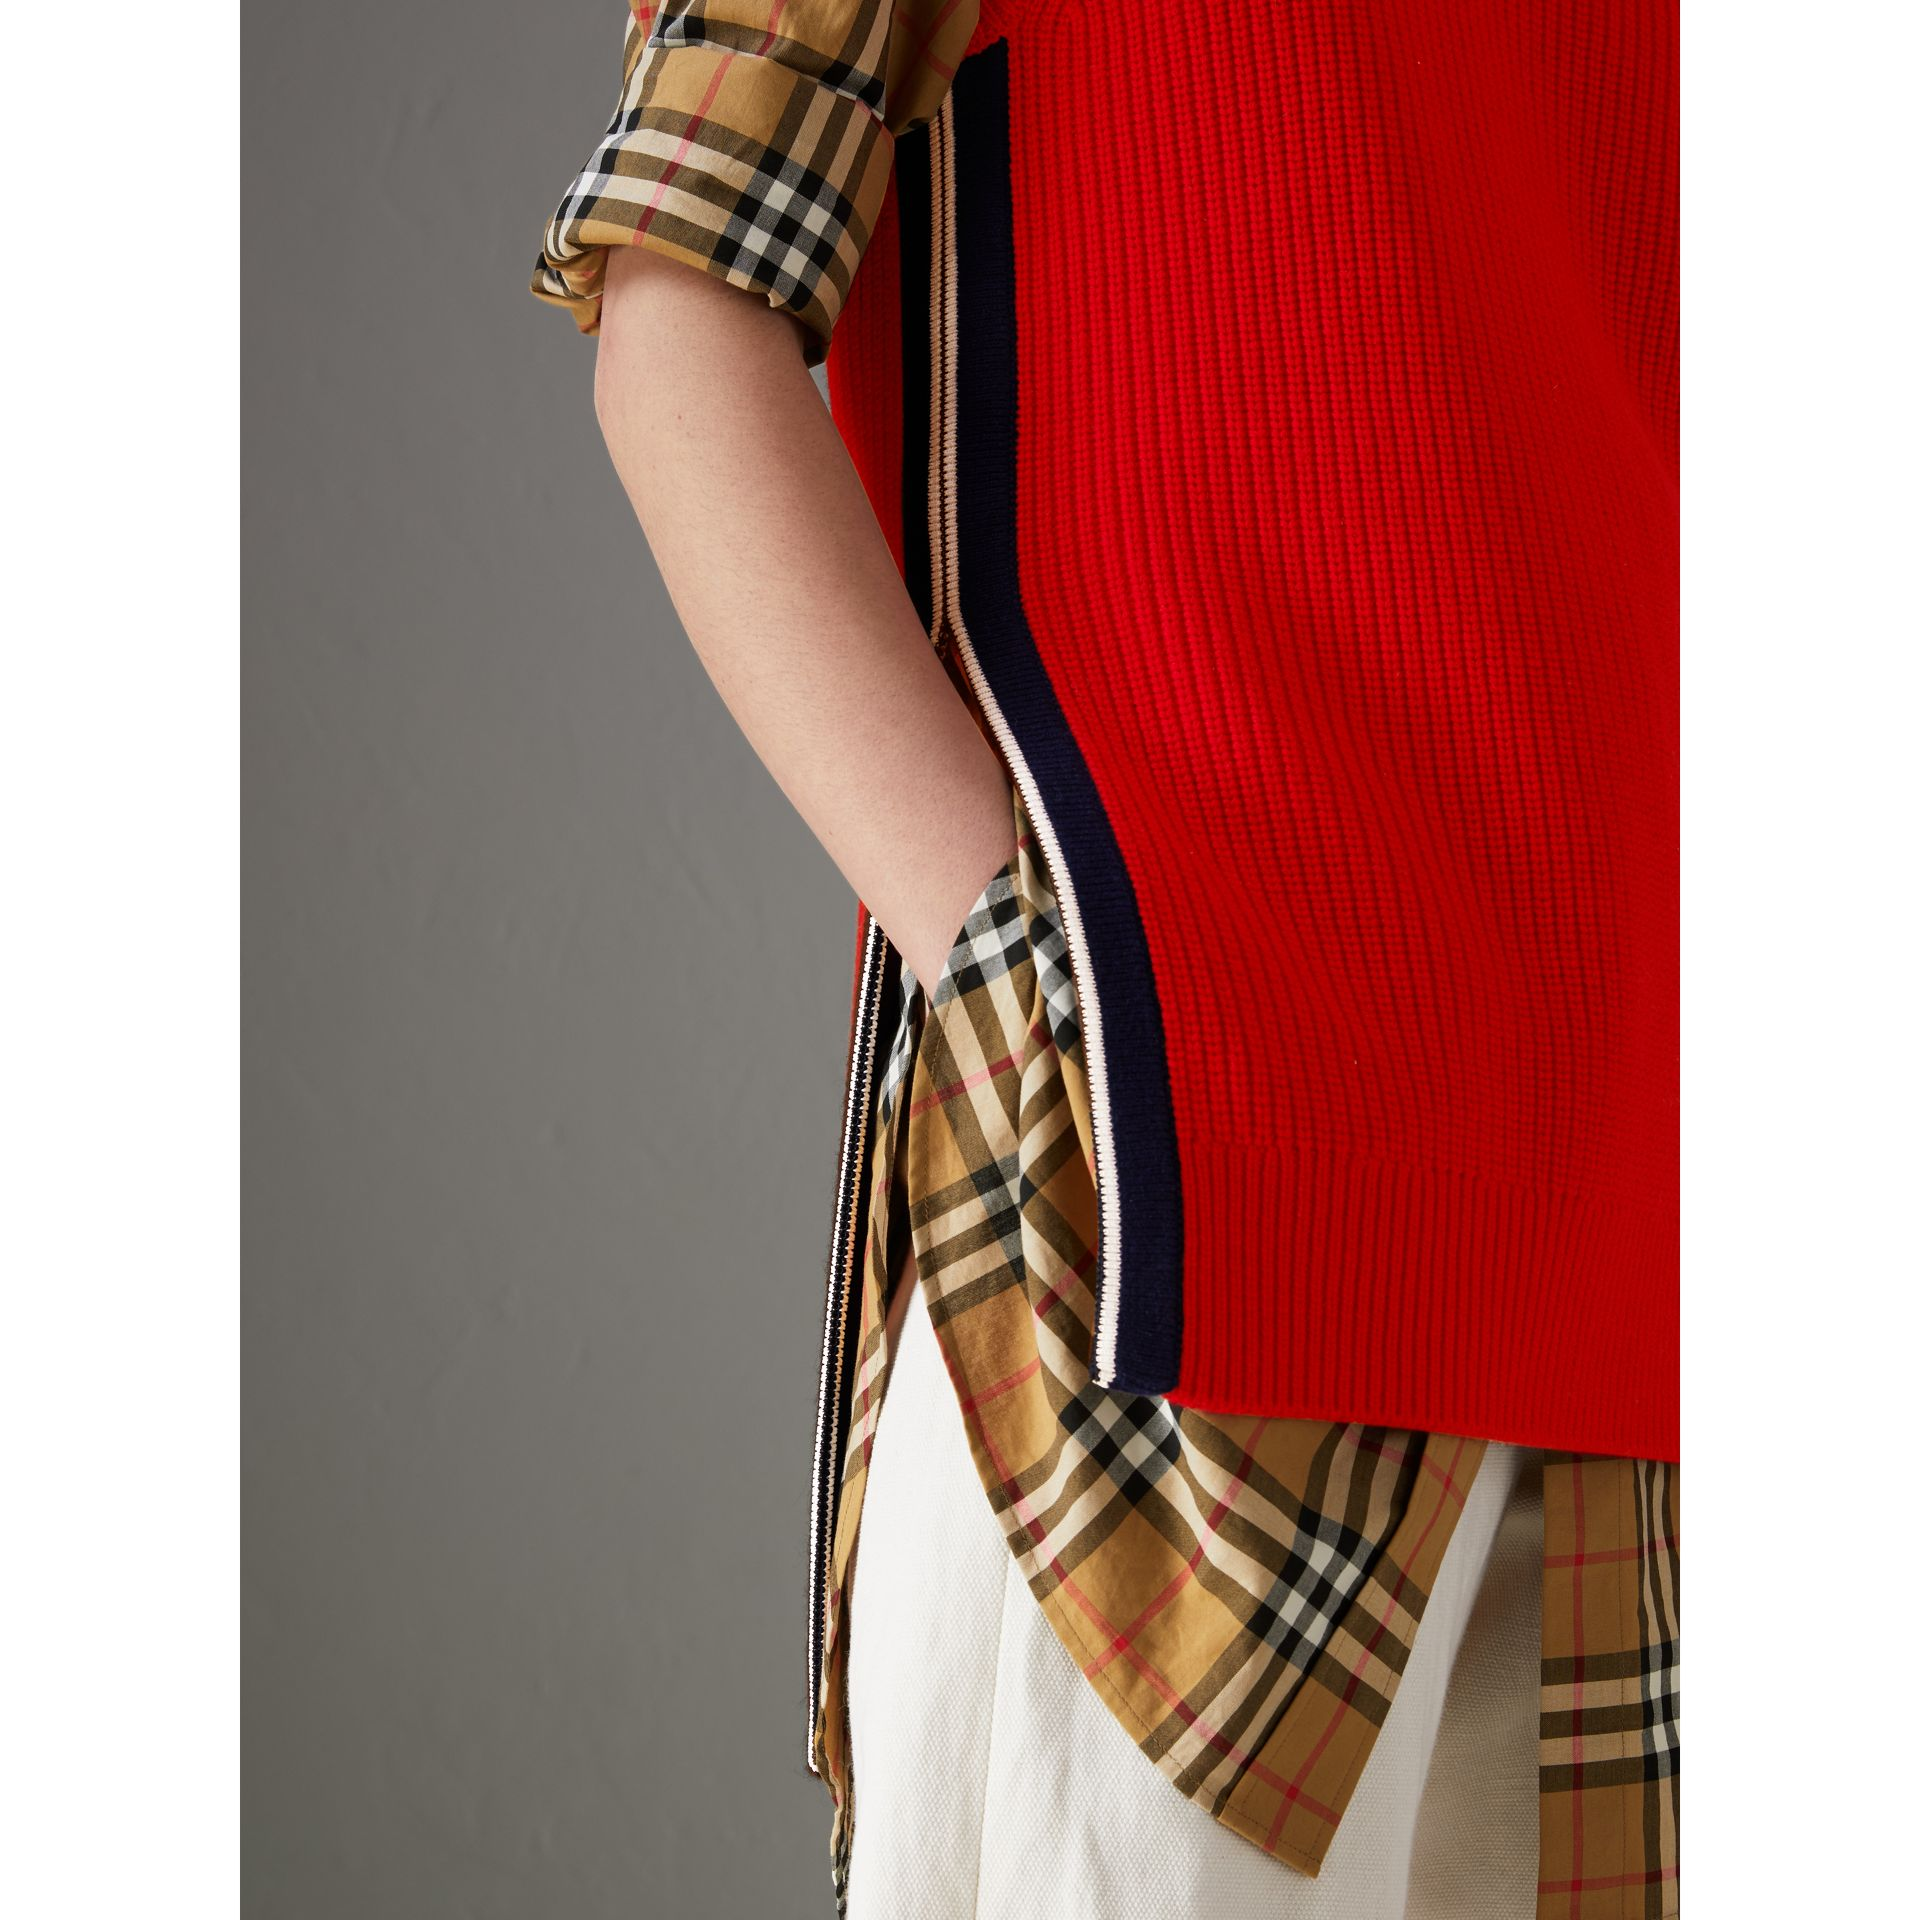 Rib Knit Wool Cashmere Vest in Military Red - Women | Burberry Singapore - gallery image 1